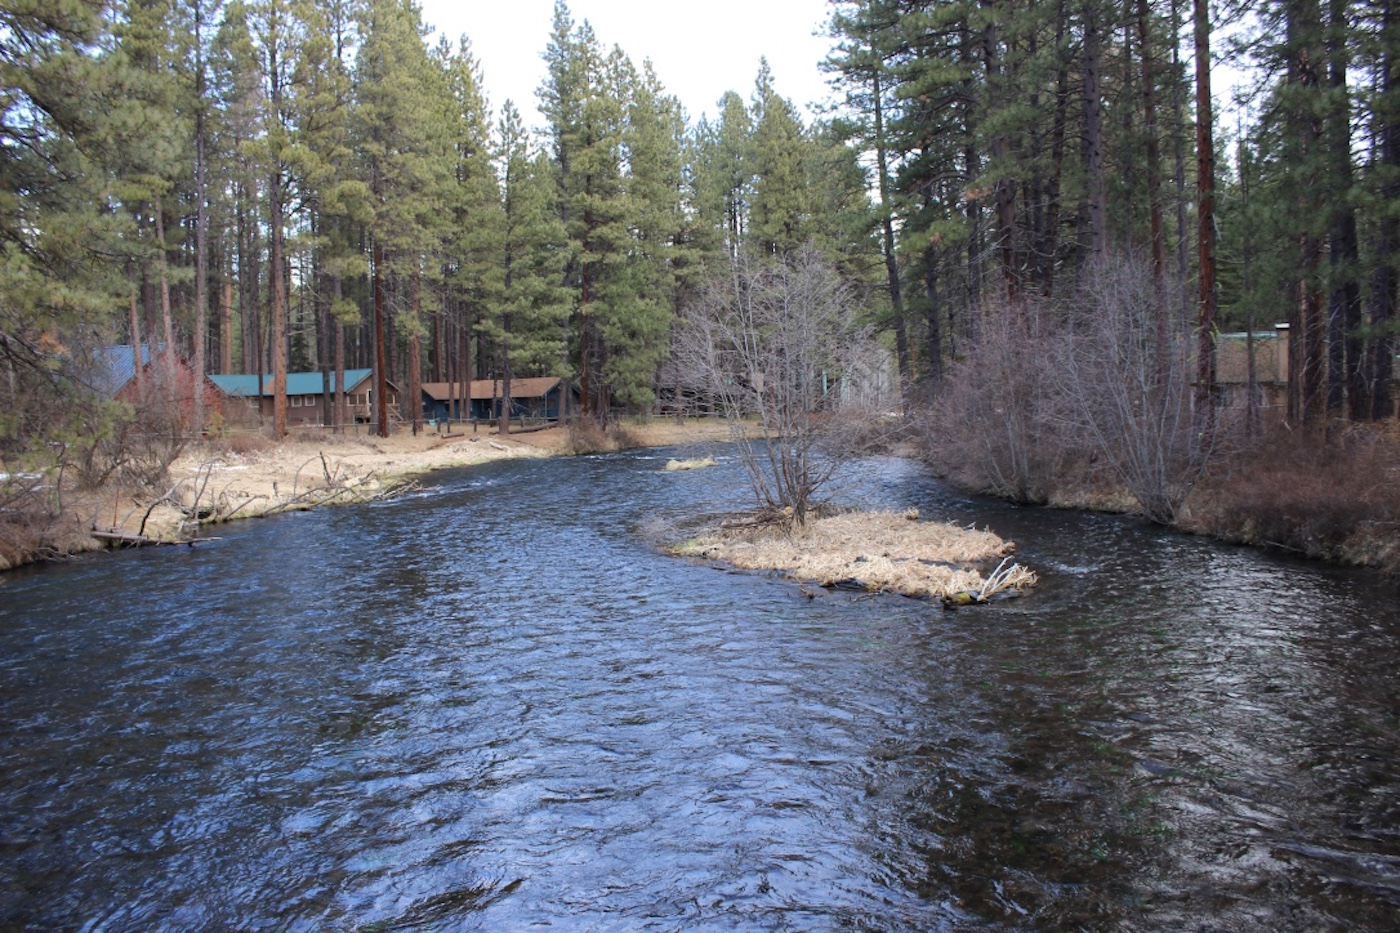 Visit Metolius River & Camp Sherman copy.jpg